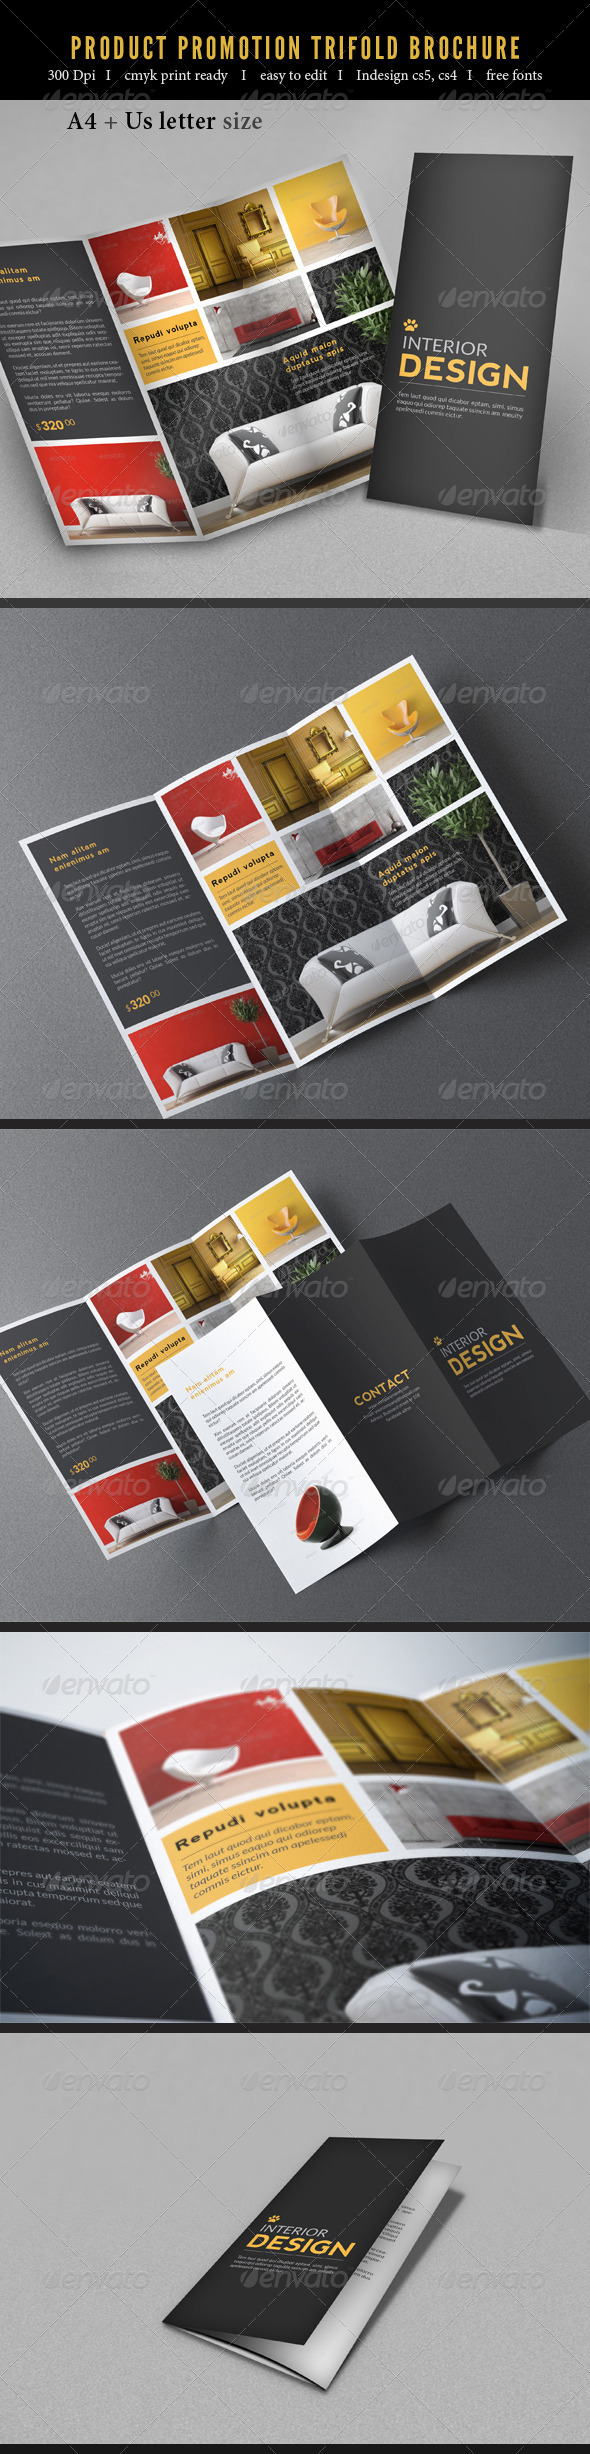 GraphicRiver Product Promotion Trifold Brochure 7665757